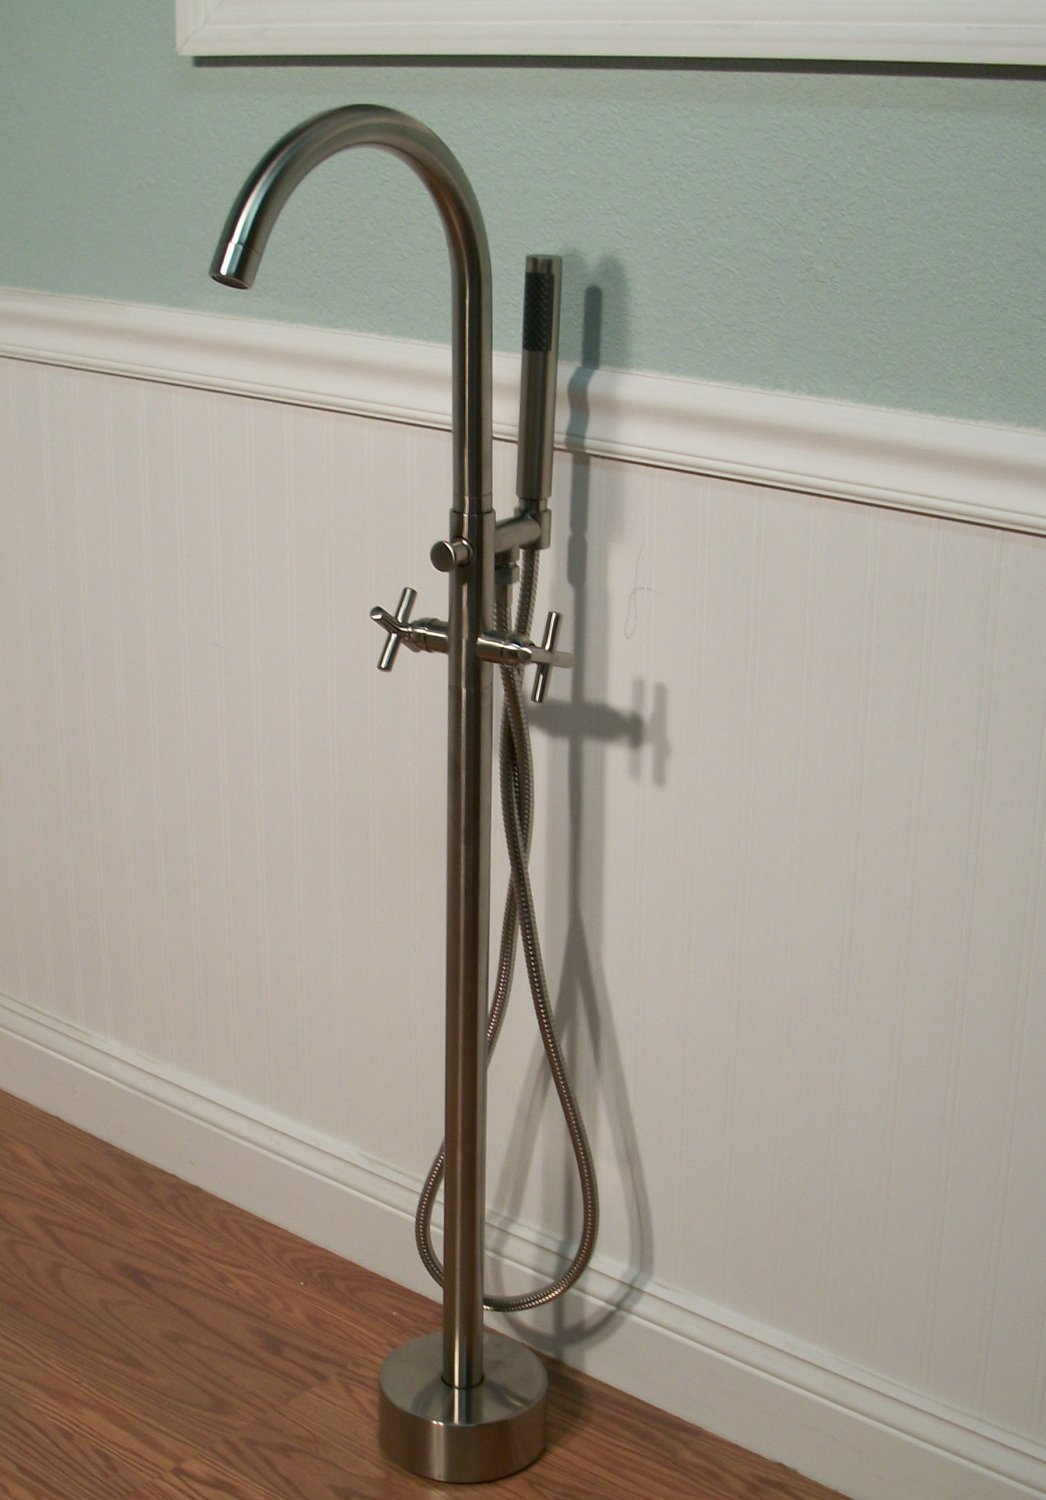 Brushed nickel free standing bathtub filler faucet for Free standing tubs for sale